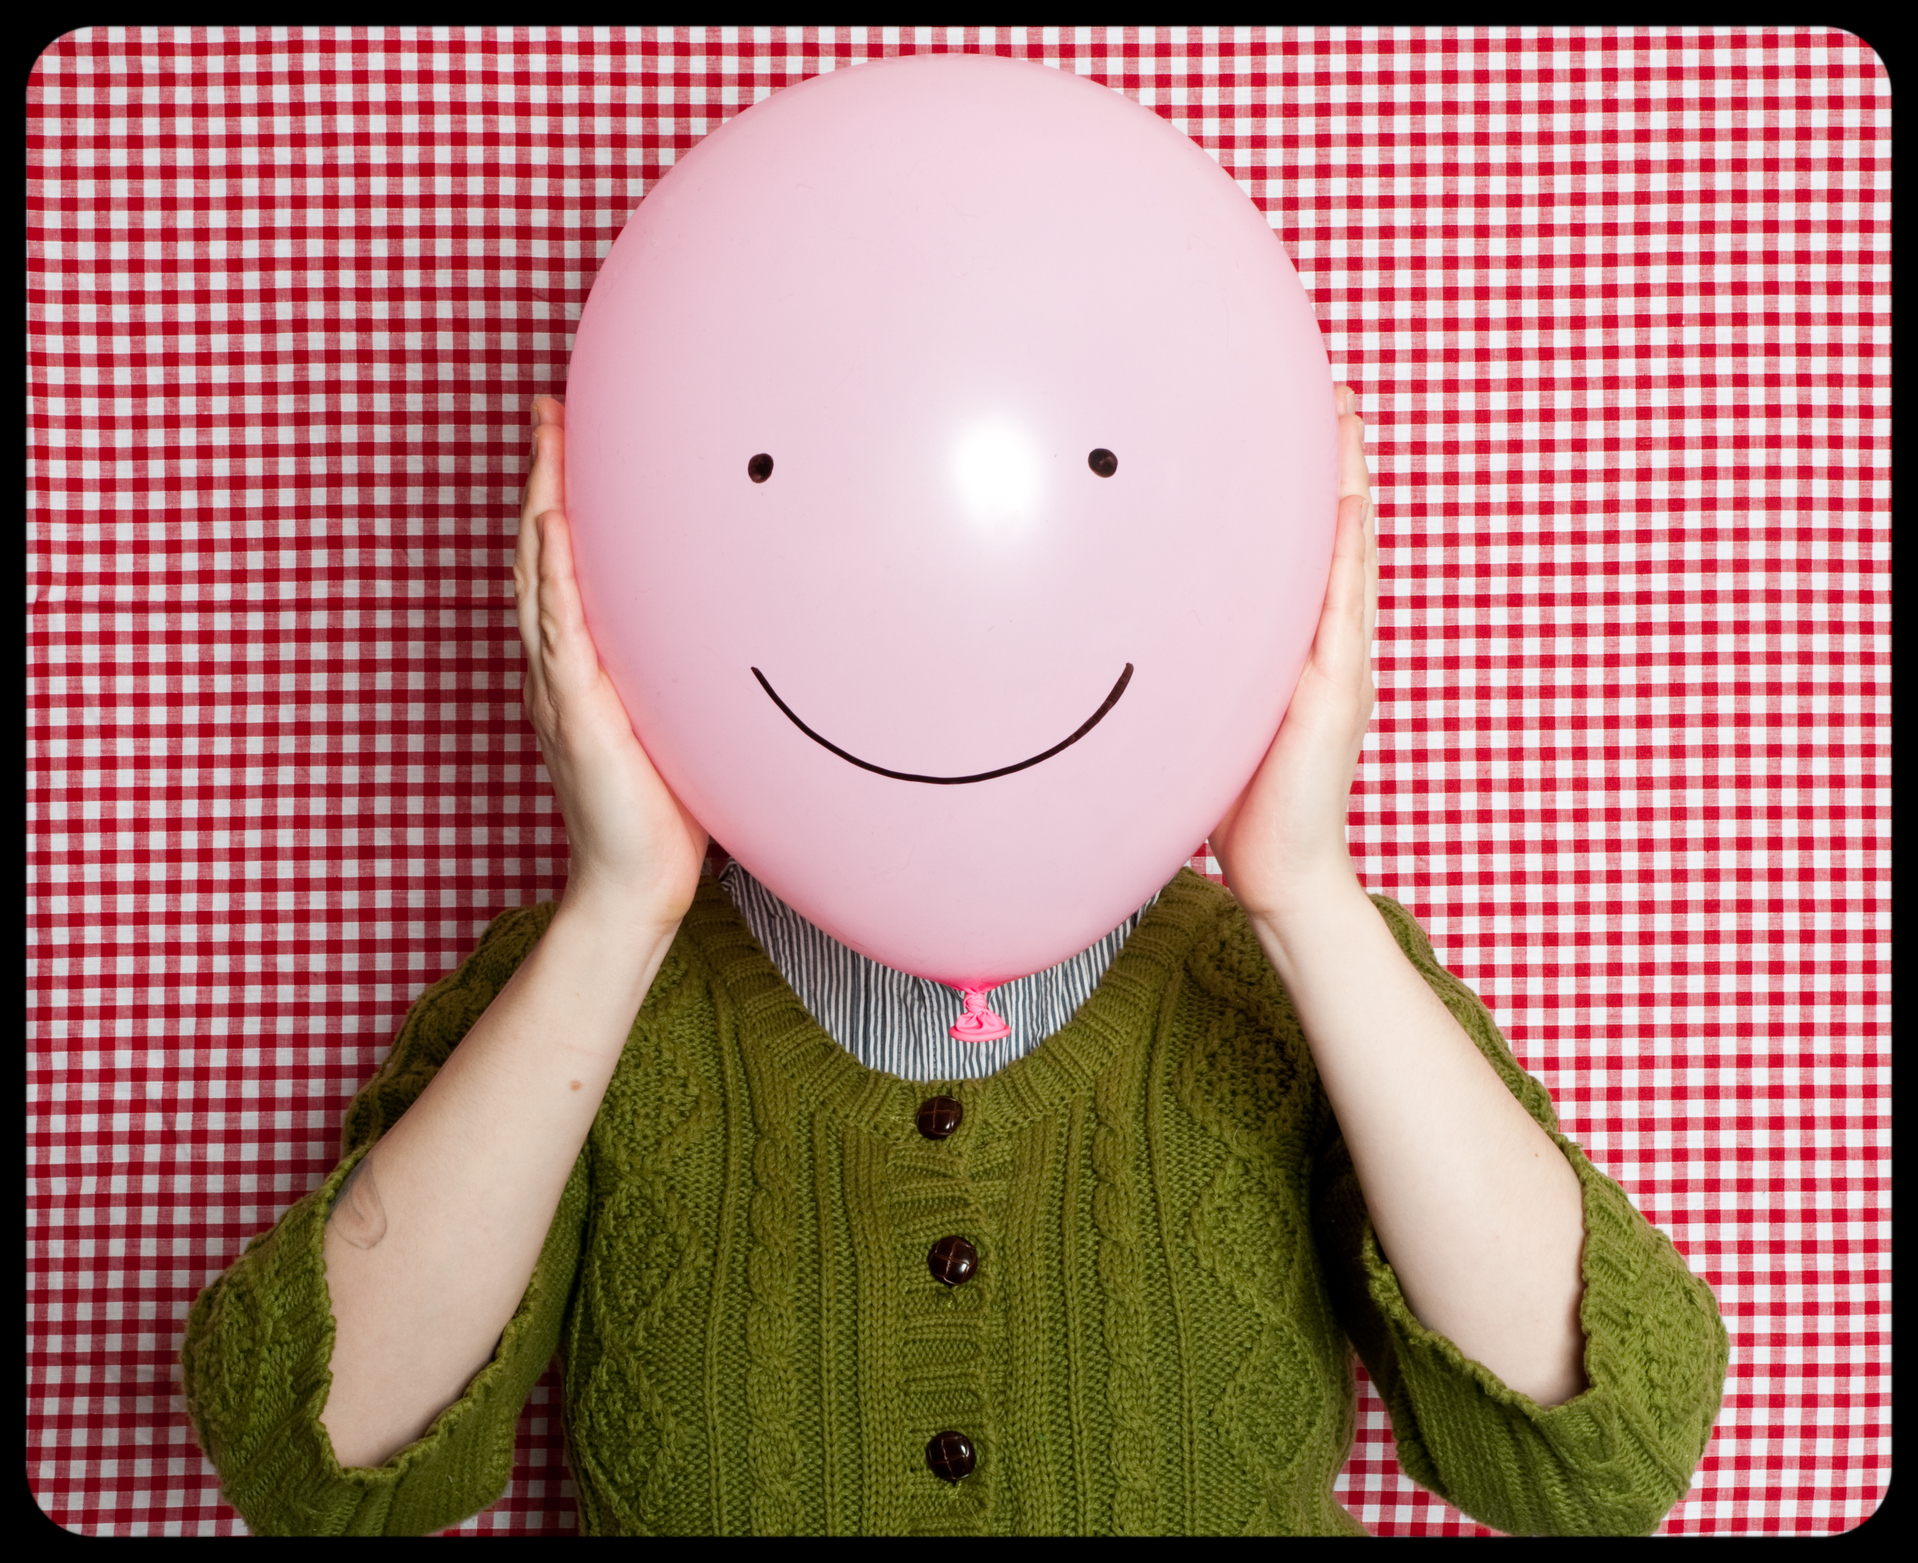 24 ways to be happier according to a happiness guru